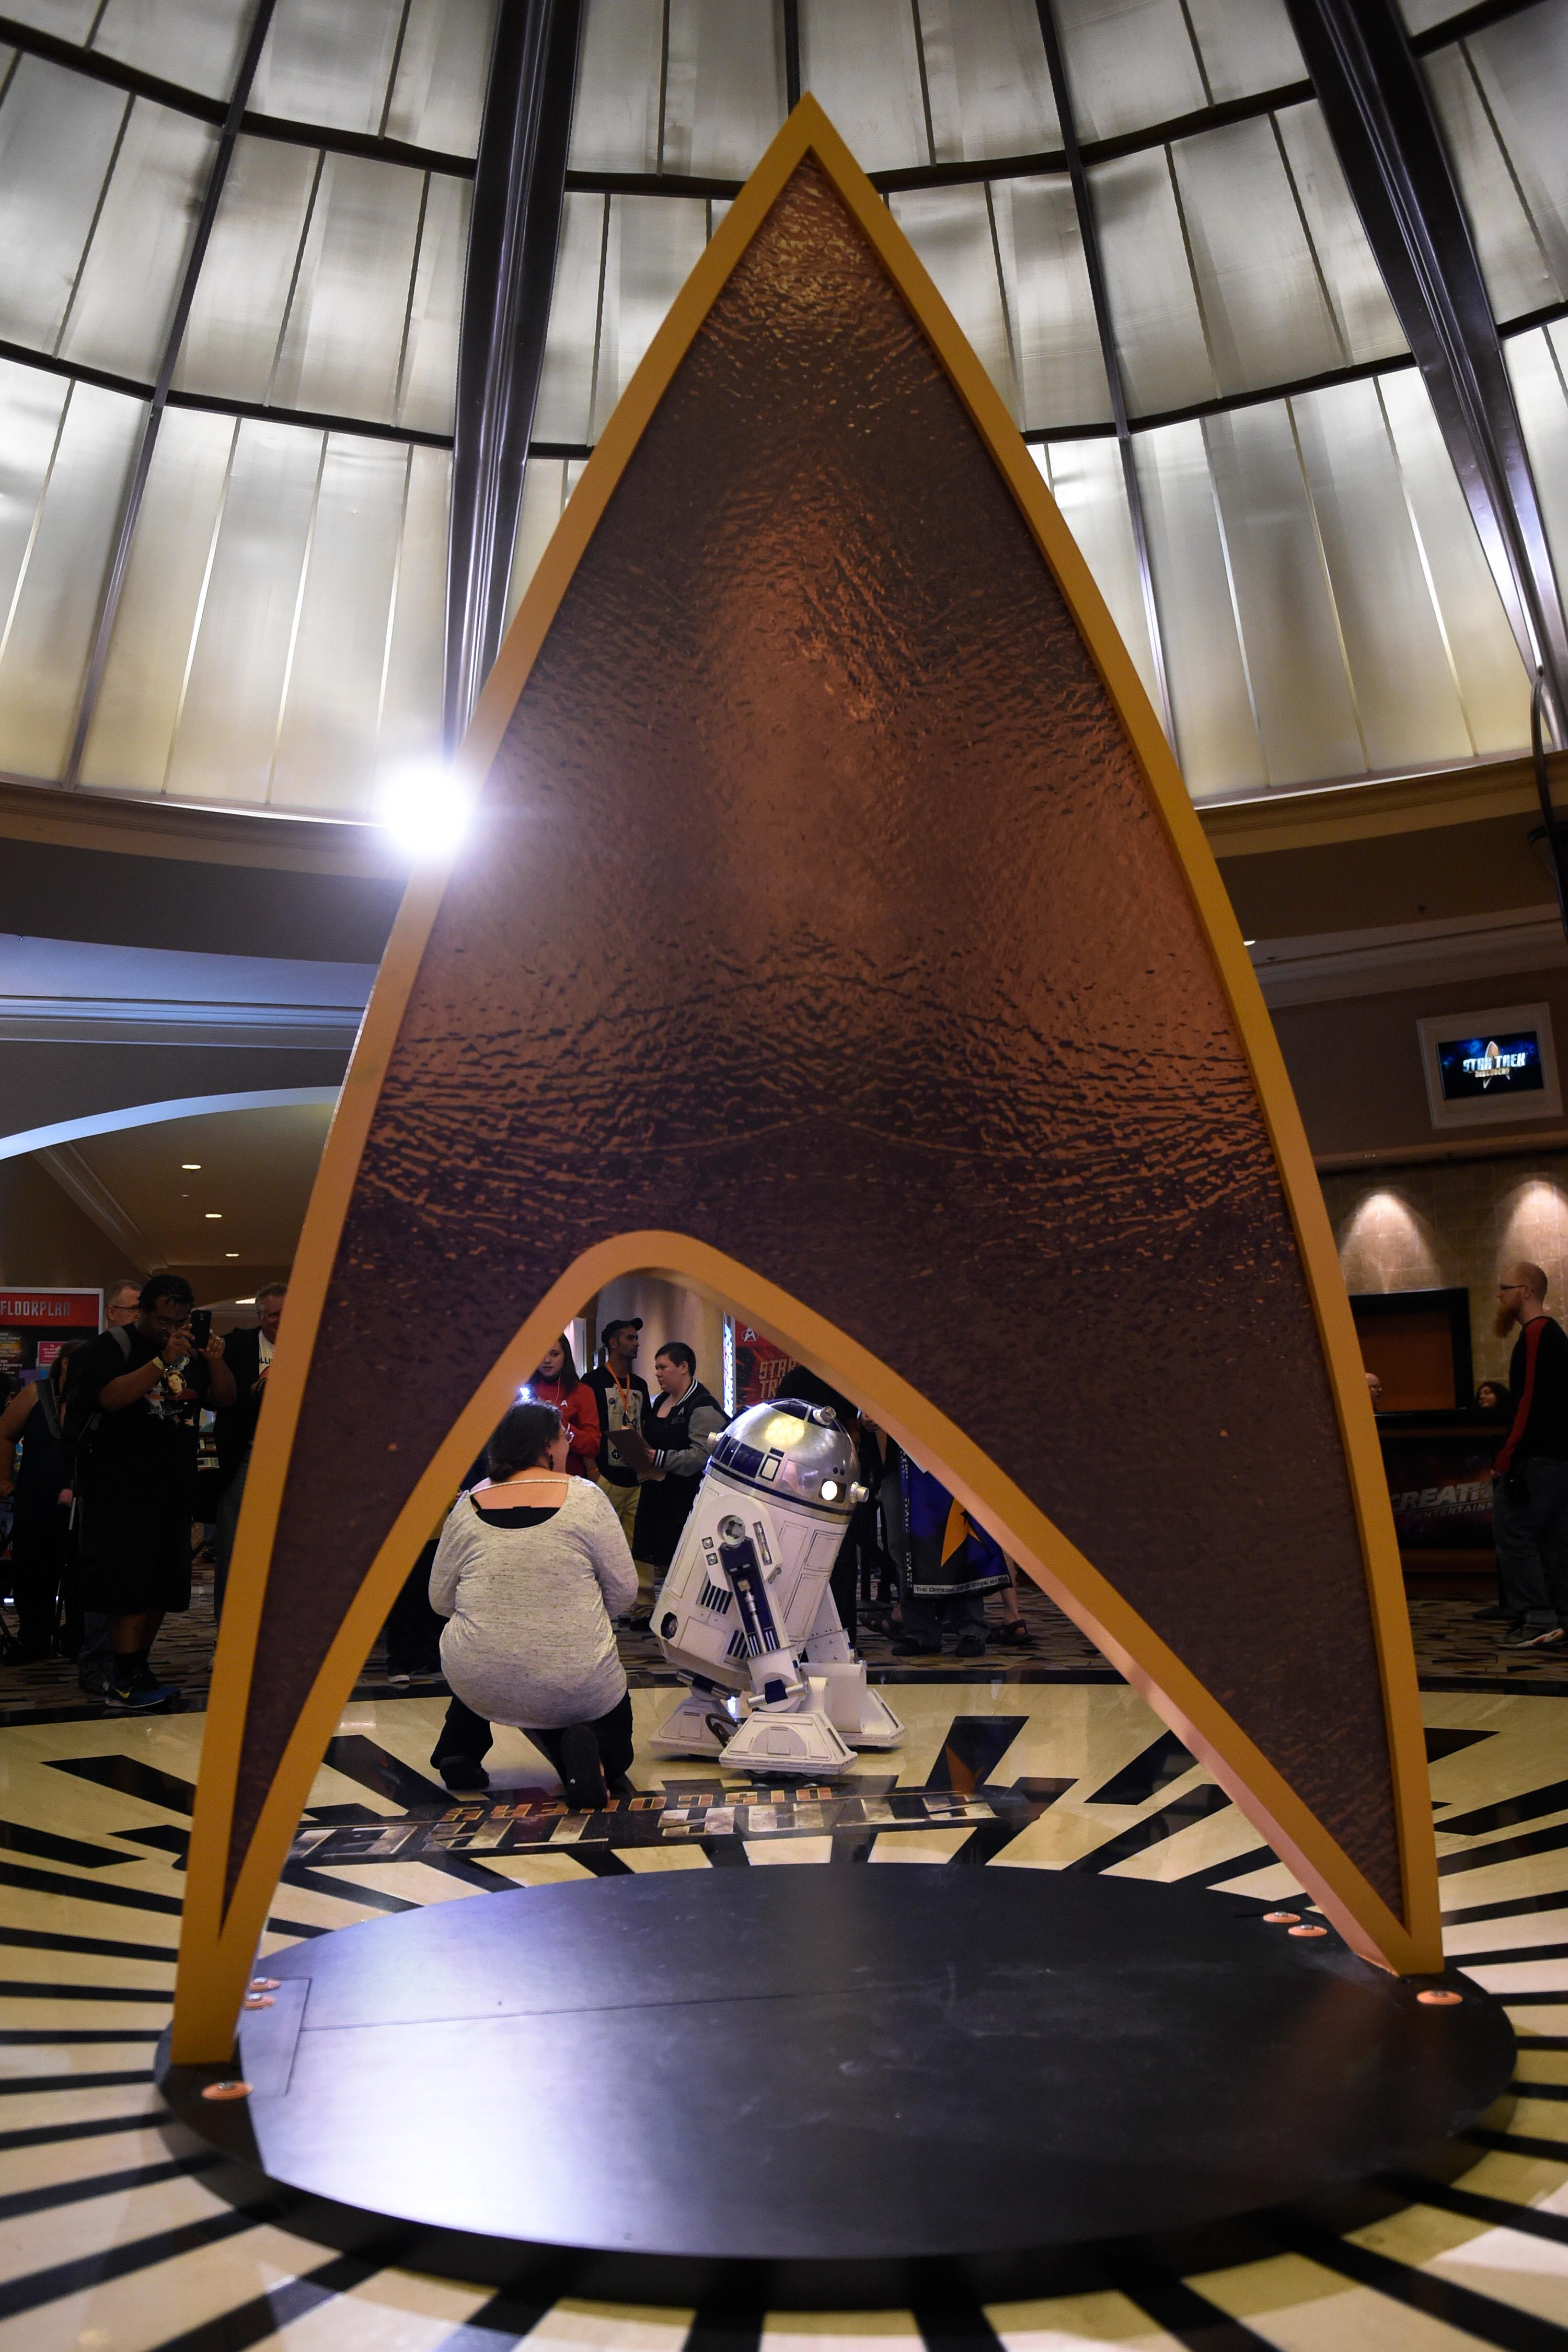 Attendees have their photo taken with a Star Wars R2D2 unit in front of a Star Trek Starfleet insignia during the 16th annual Las Vegas Star Trek Convention Saturday, August 5, 2017, at the Rio.  CREDIT: Sam Morris/Las Vegas News Bureau